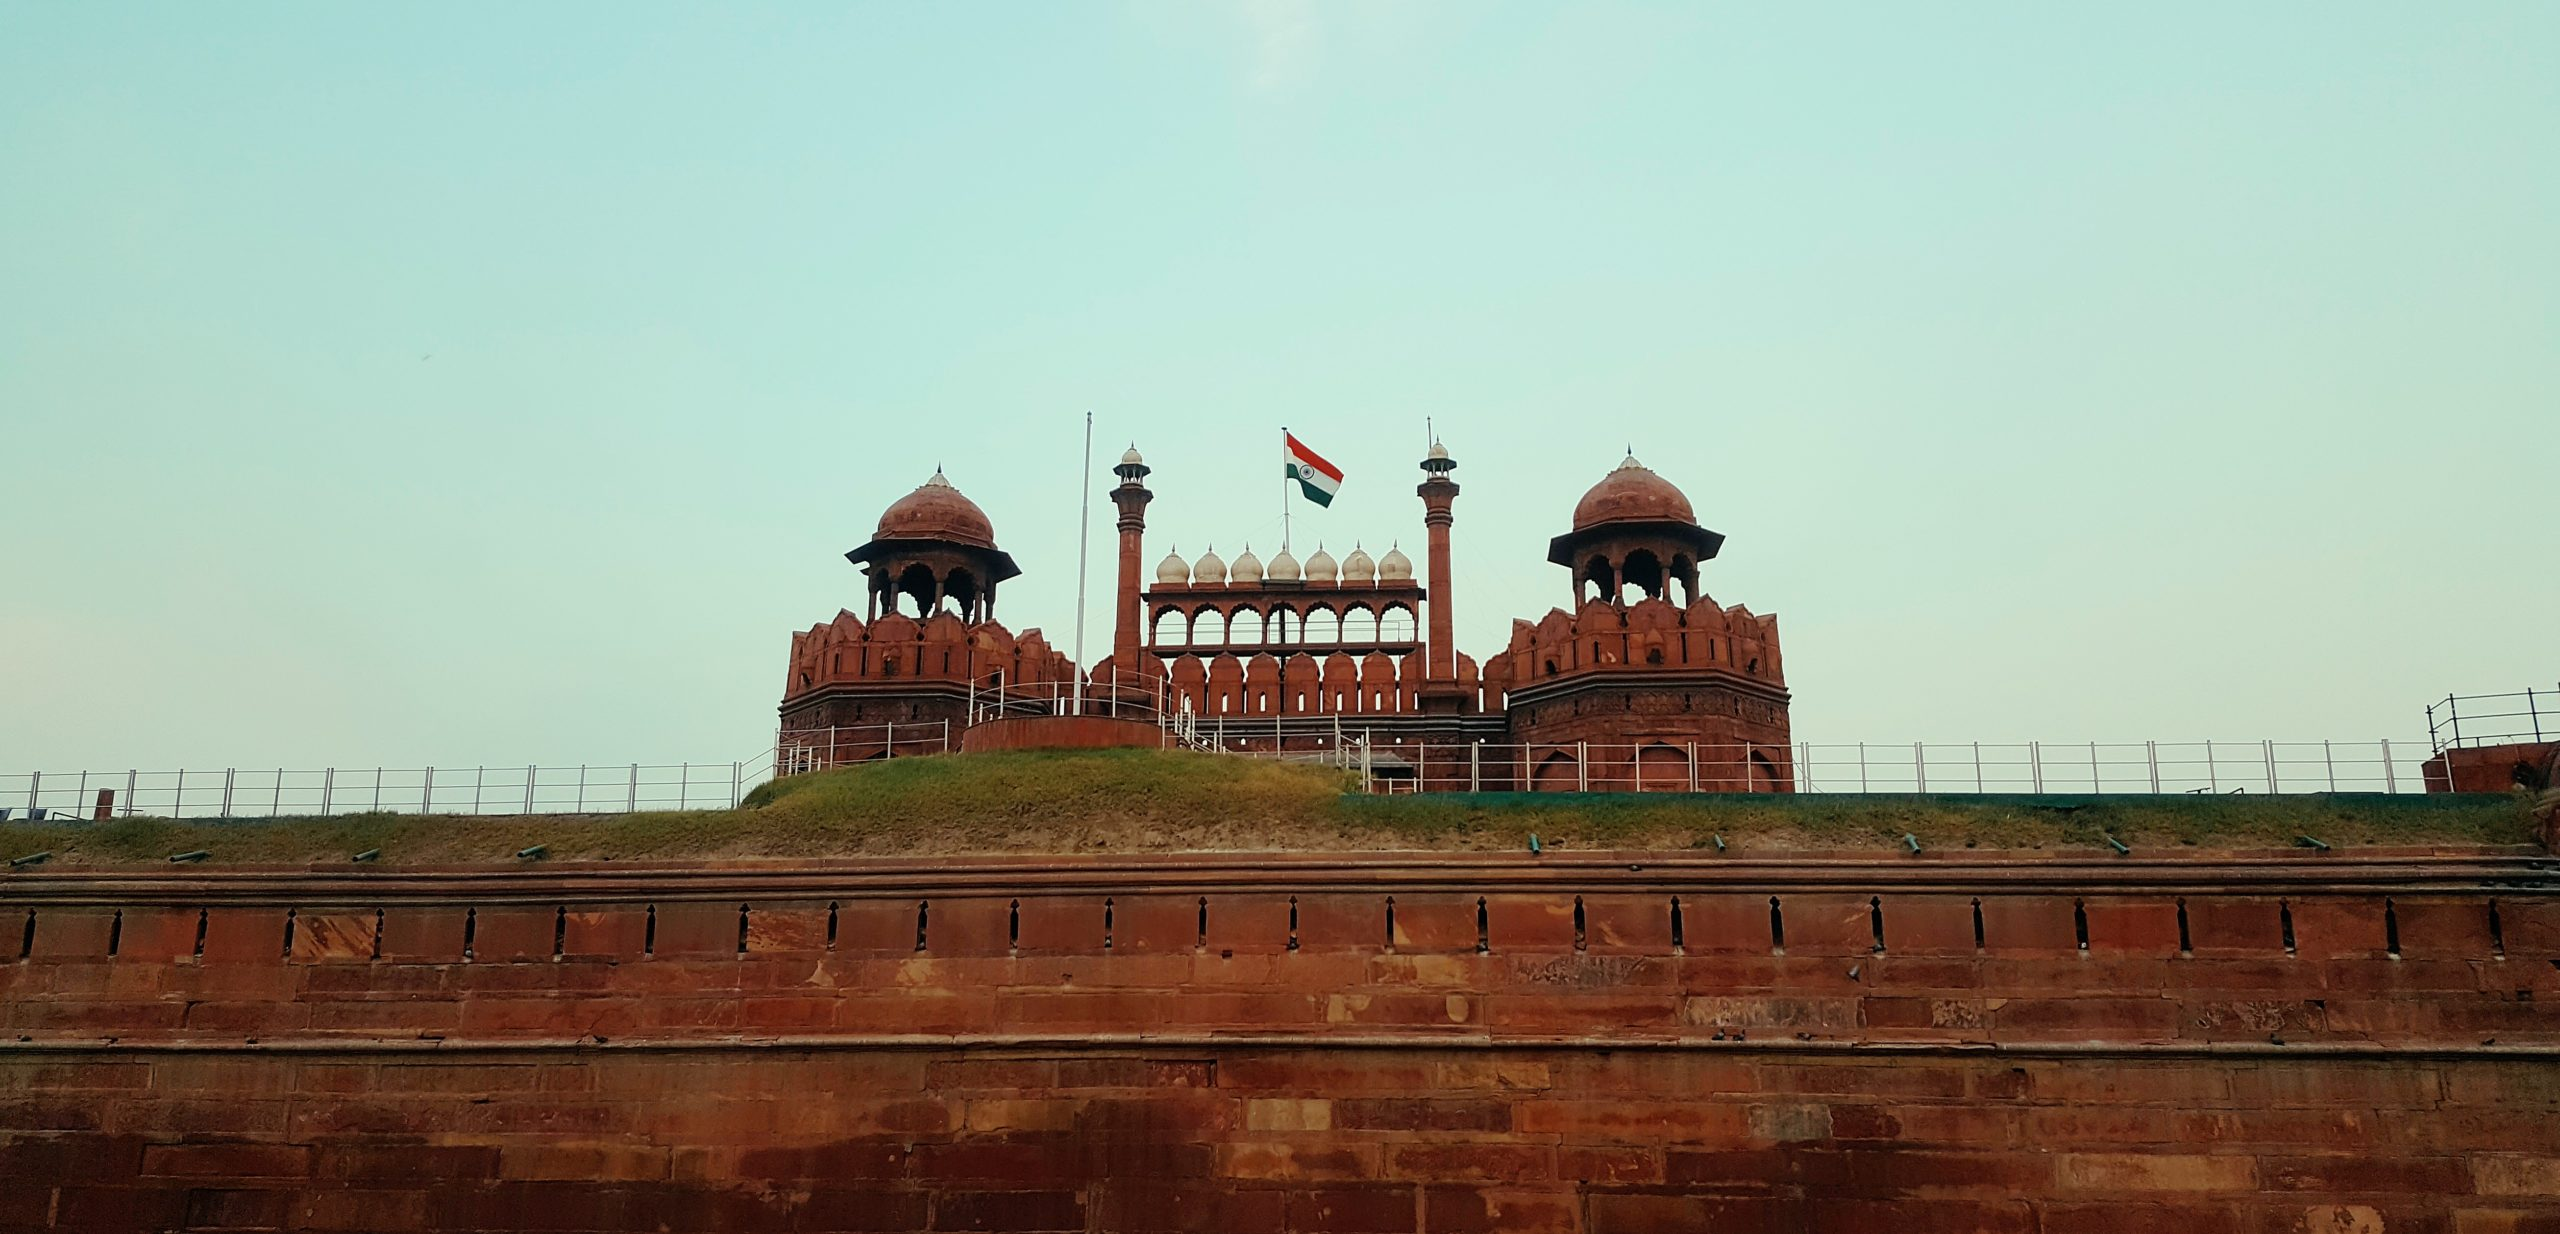 Agra Fort / Red Fort